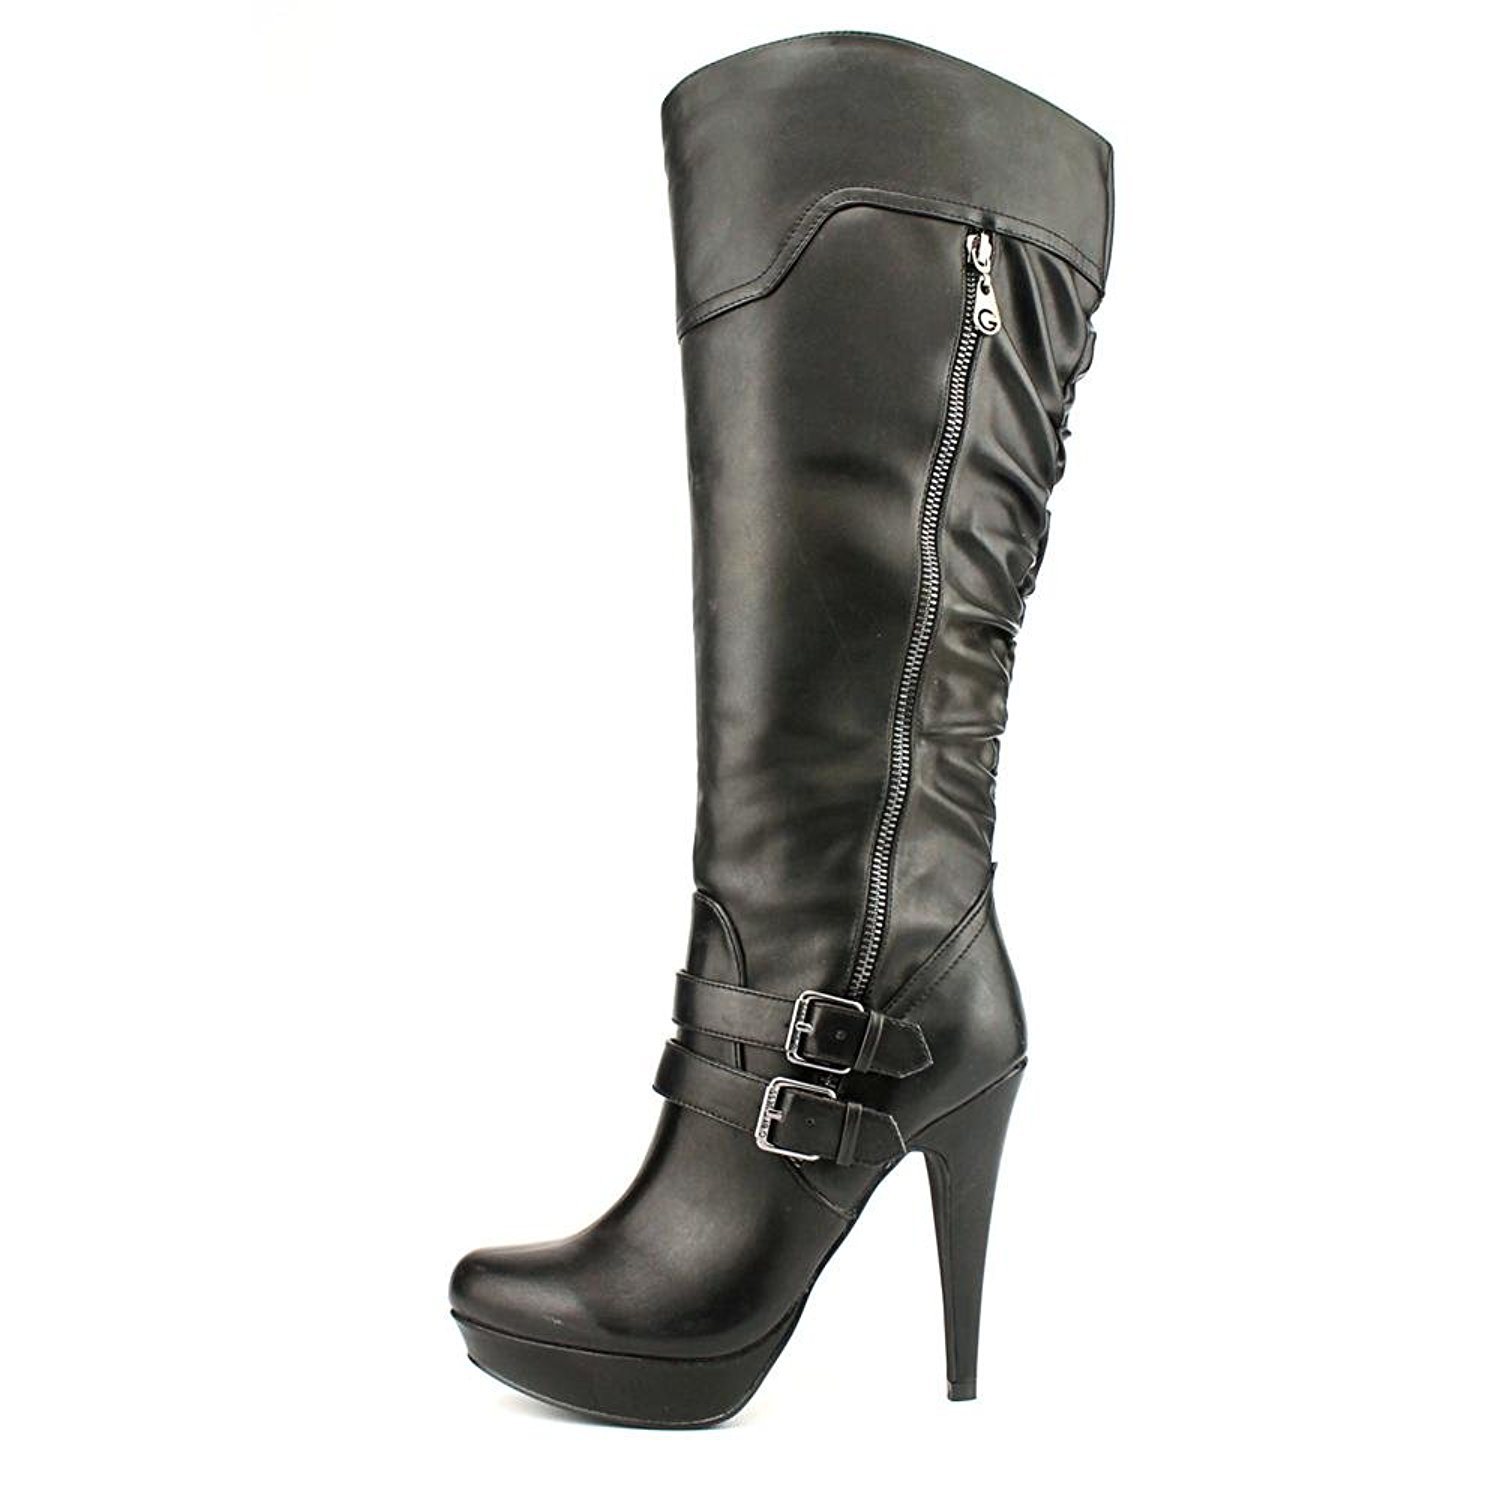 G by Guess Womens Danjer Closed Toe Knee High Fashion Boots Black Size 10.0 S4